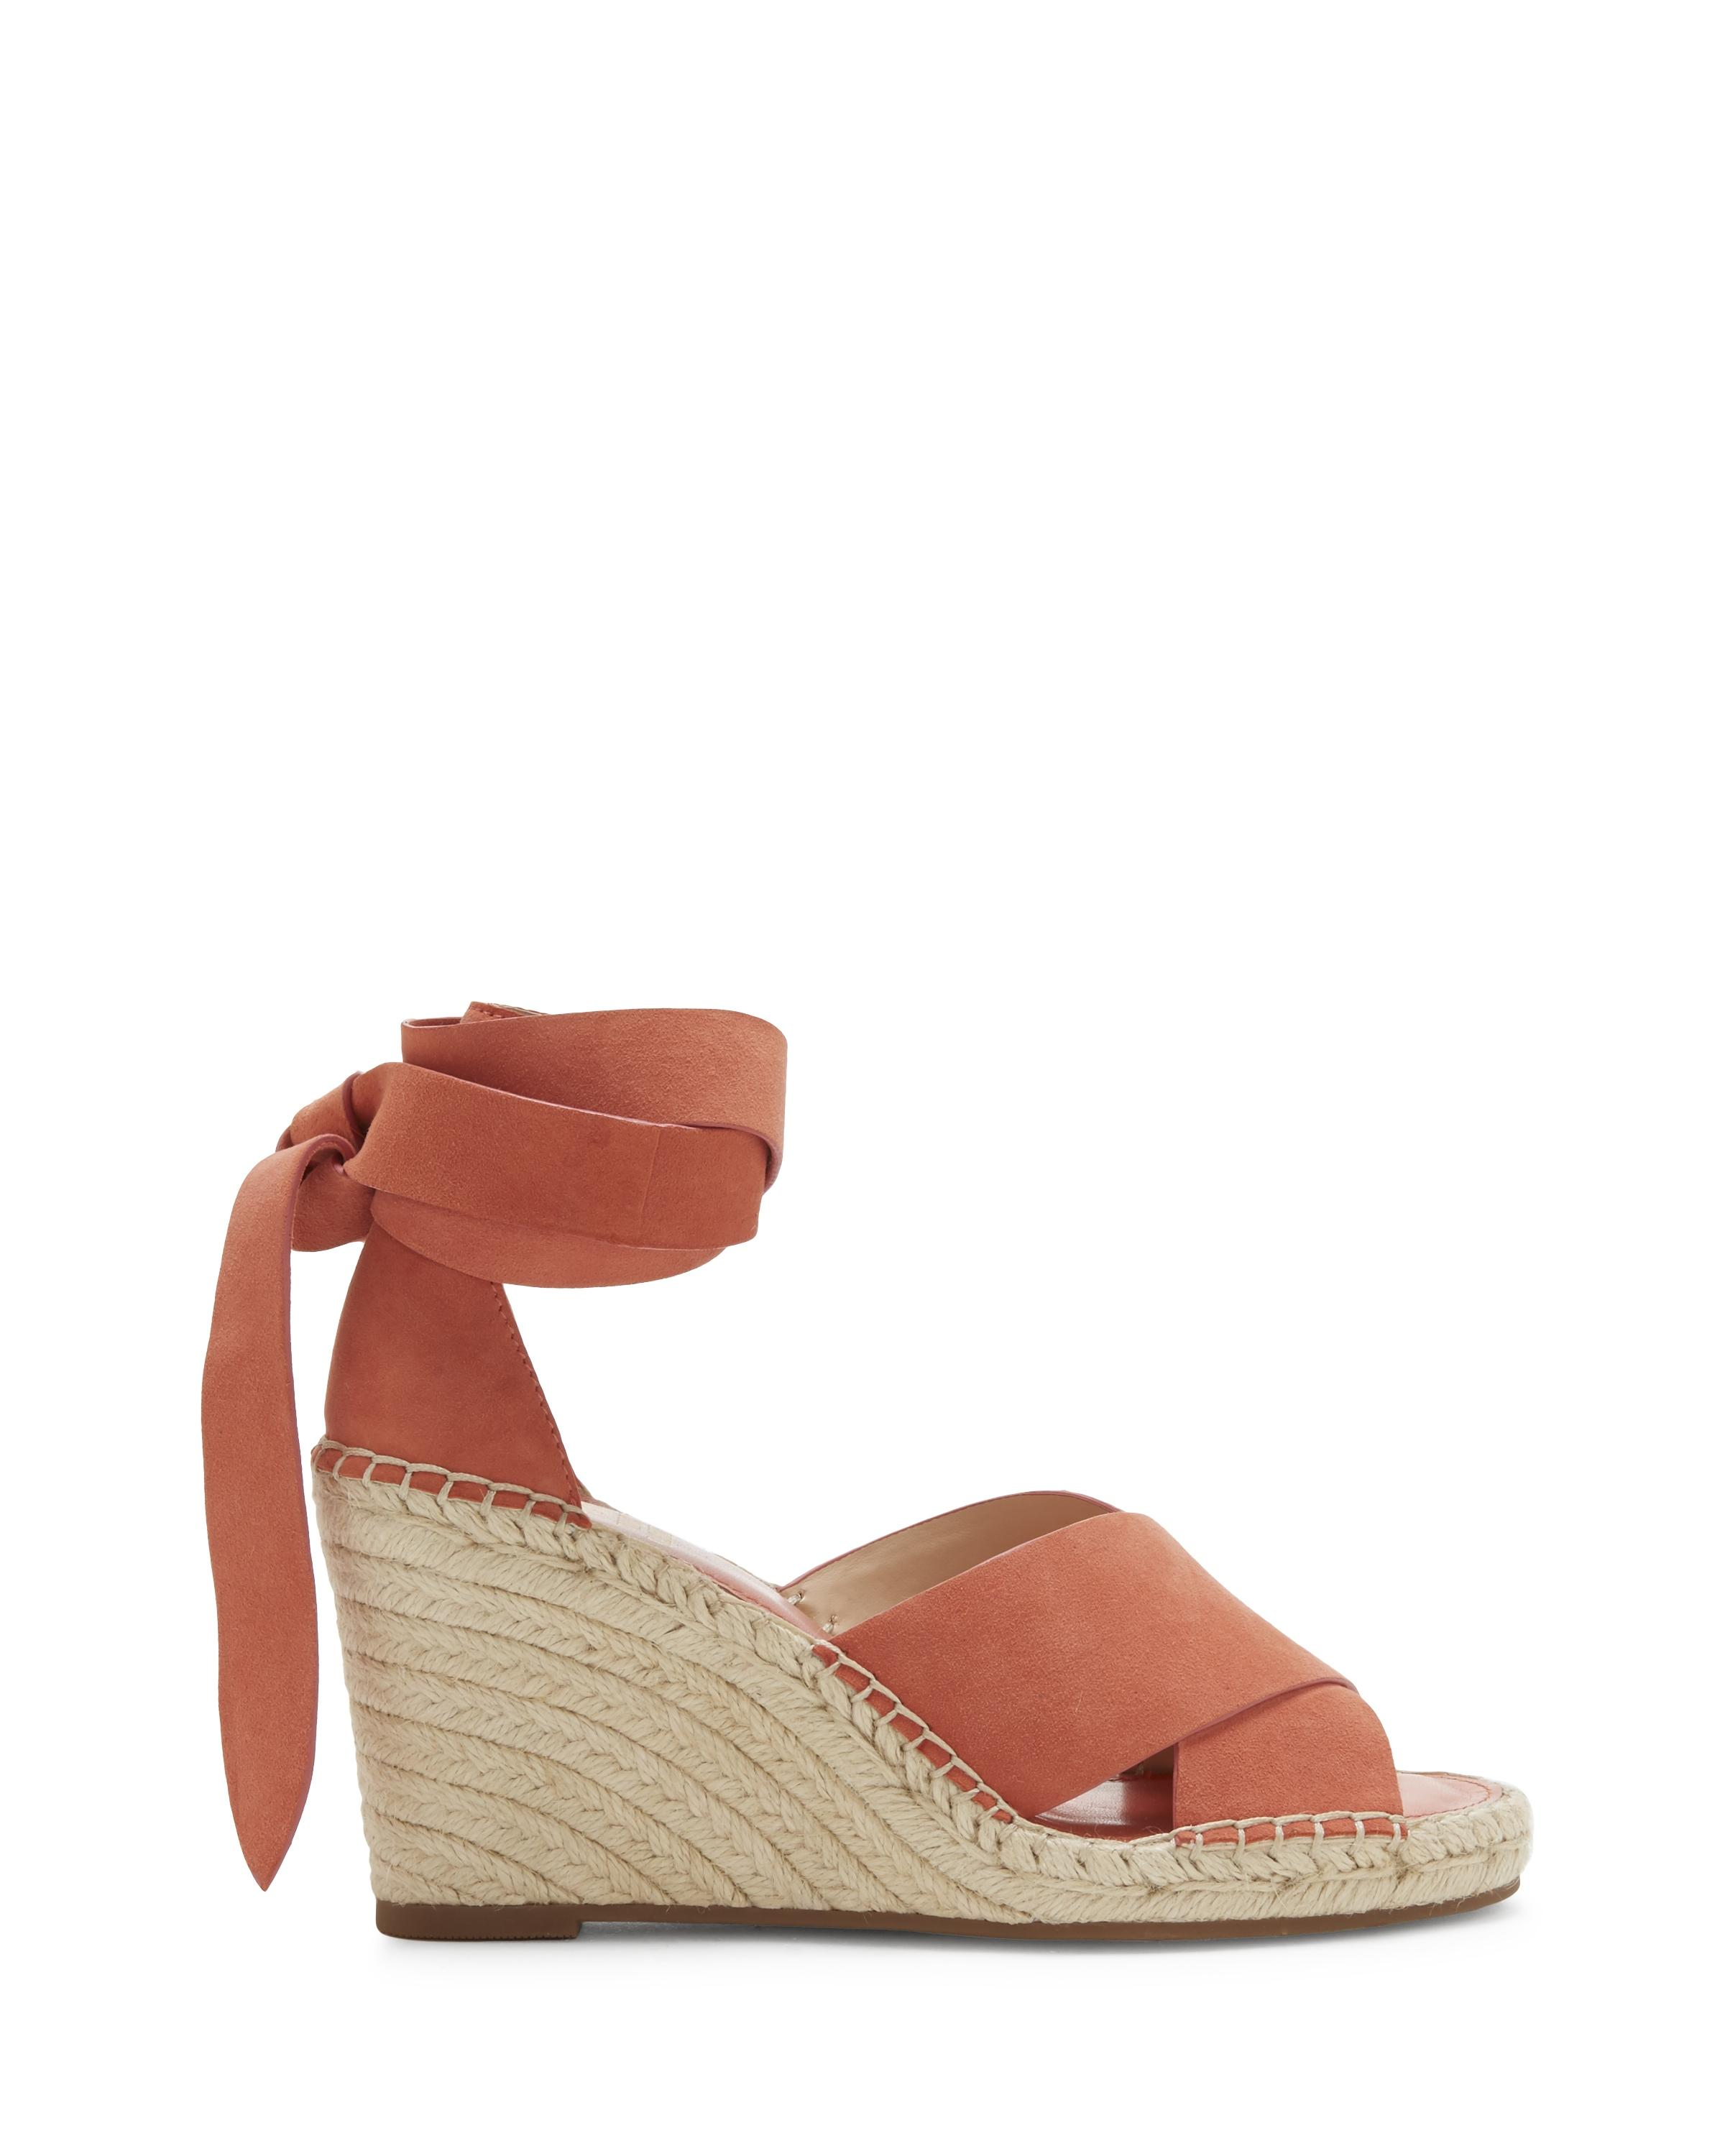 74359e7aff Vince Camuto Leddy – Espadrille Wedge Sandal in Brown - Lyst